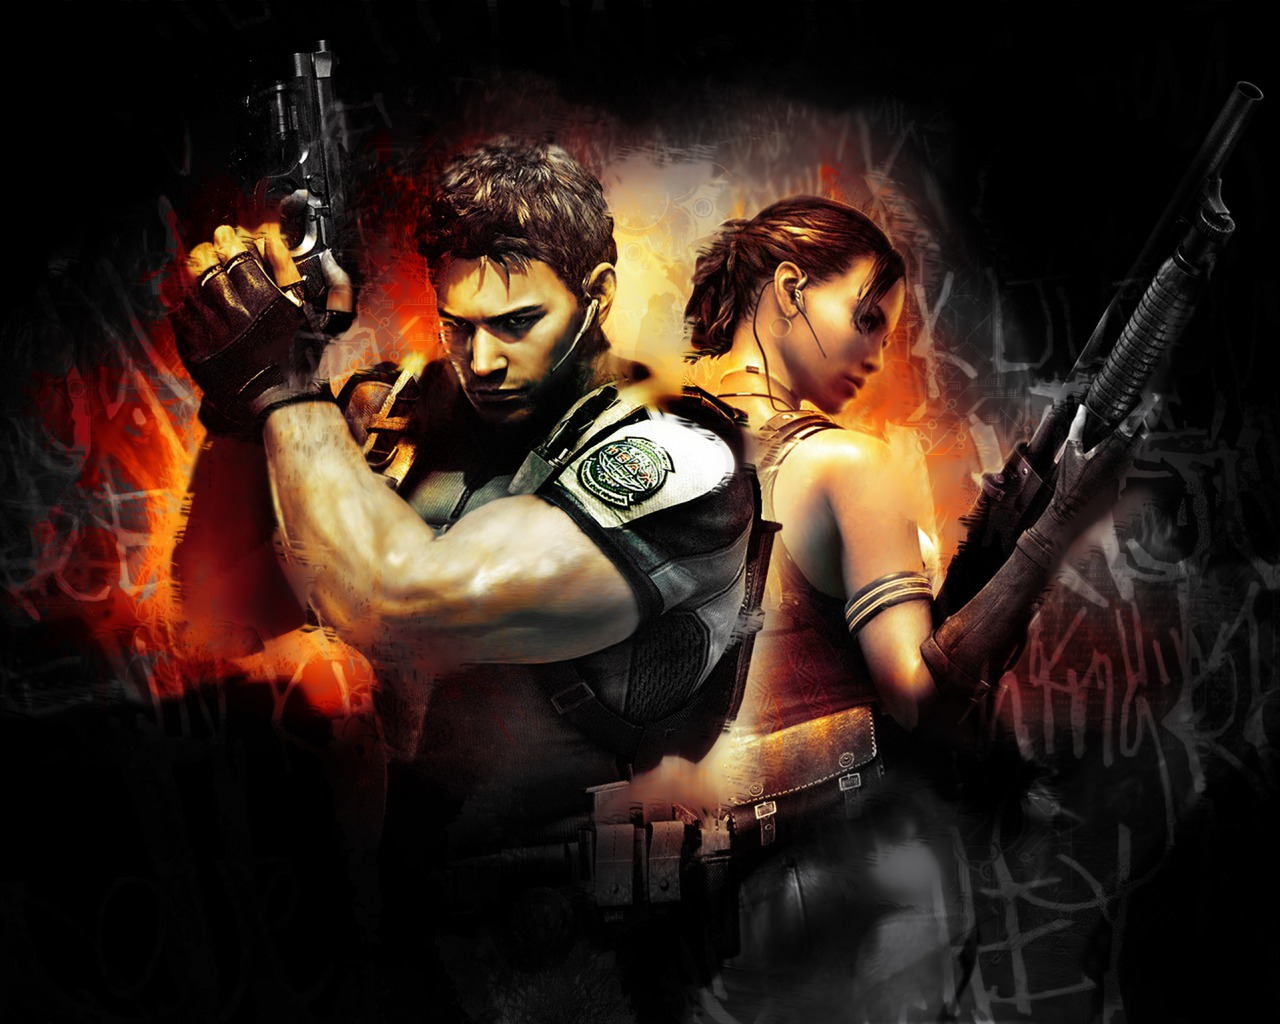 Resident Evil 5 Chris Redfield Claire Redfield Resident Evil Code Veronica Png Action Figure Bsaa Capcom Chris R Resident Evil Resident Evil 5 Redfield